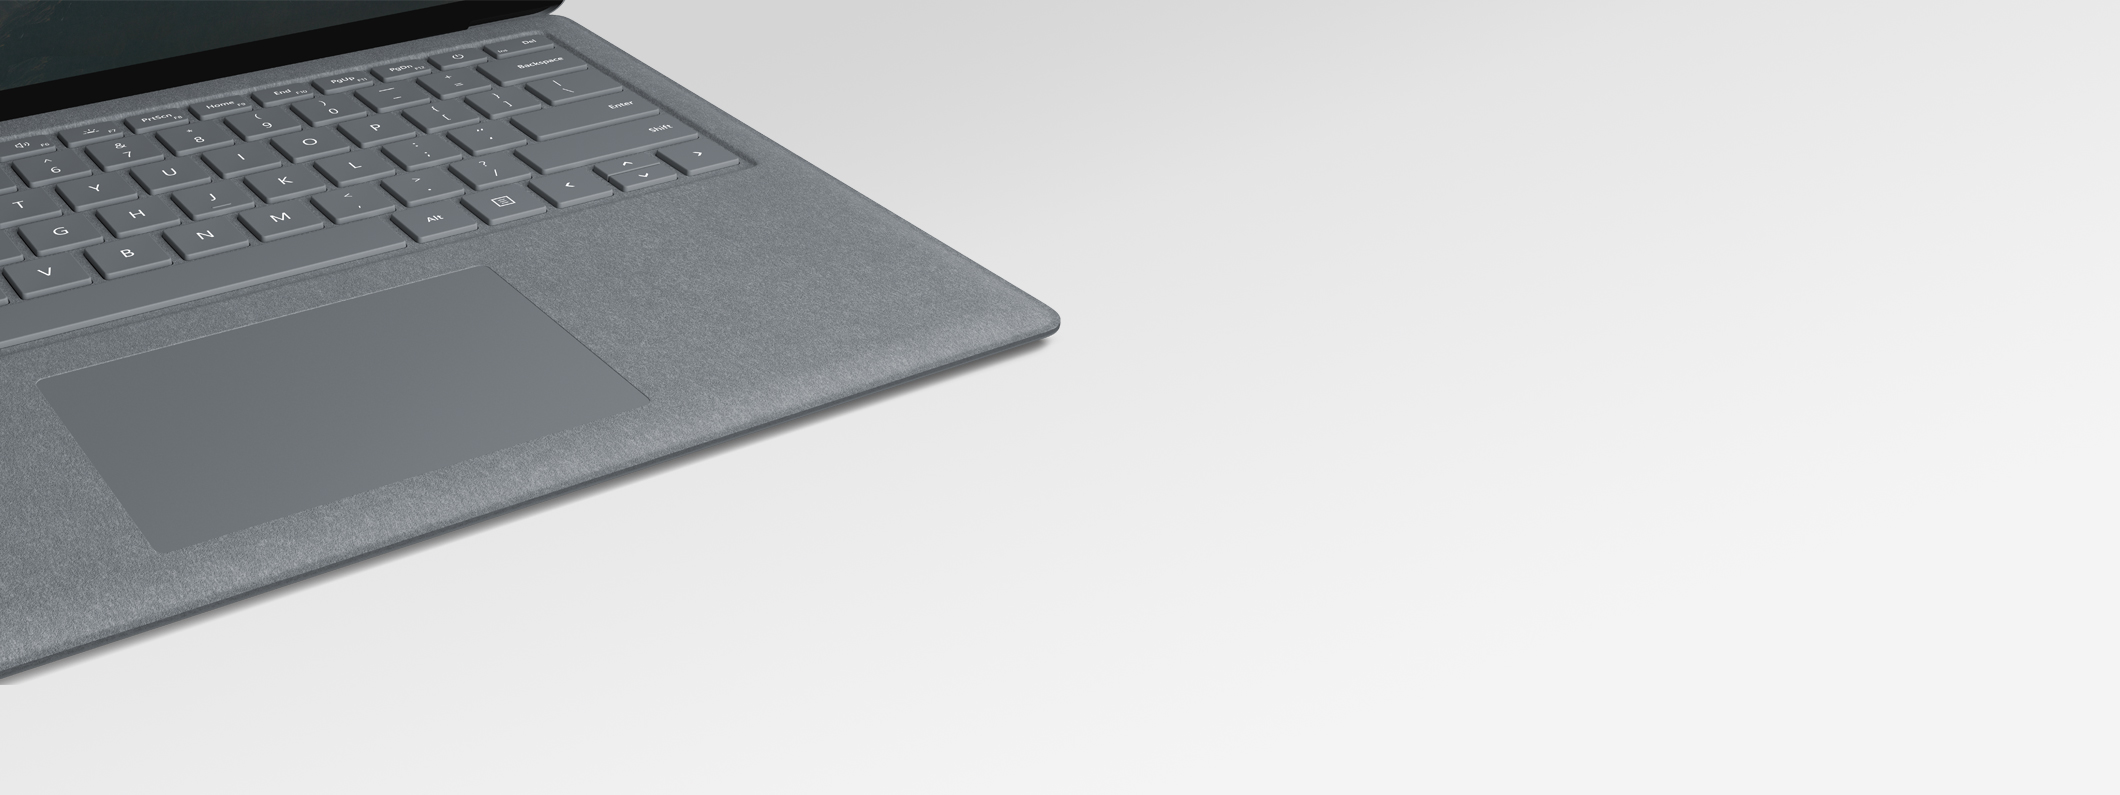 Surface Laptop 2-toetsenbord en-trackpad